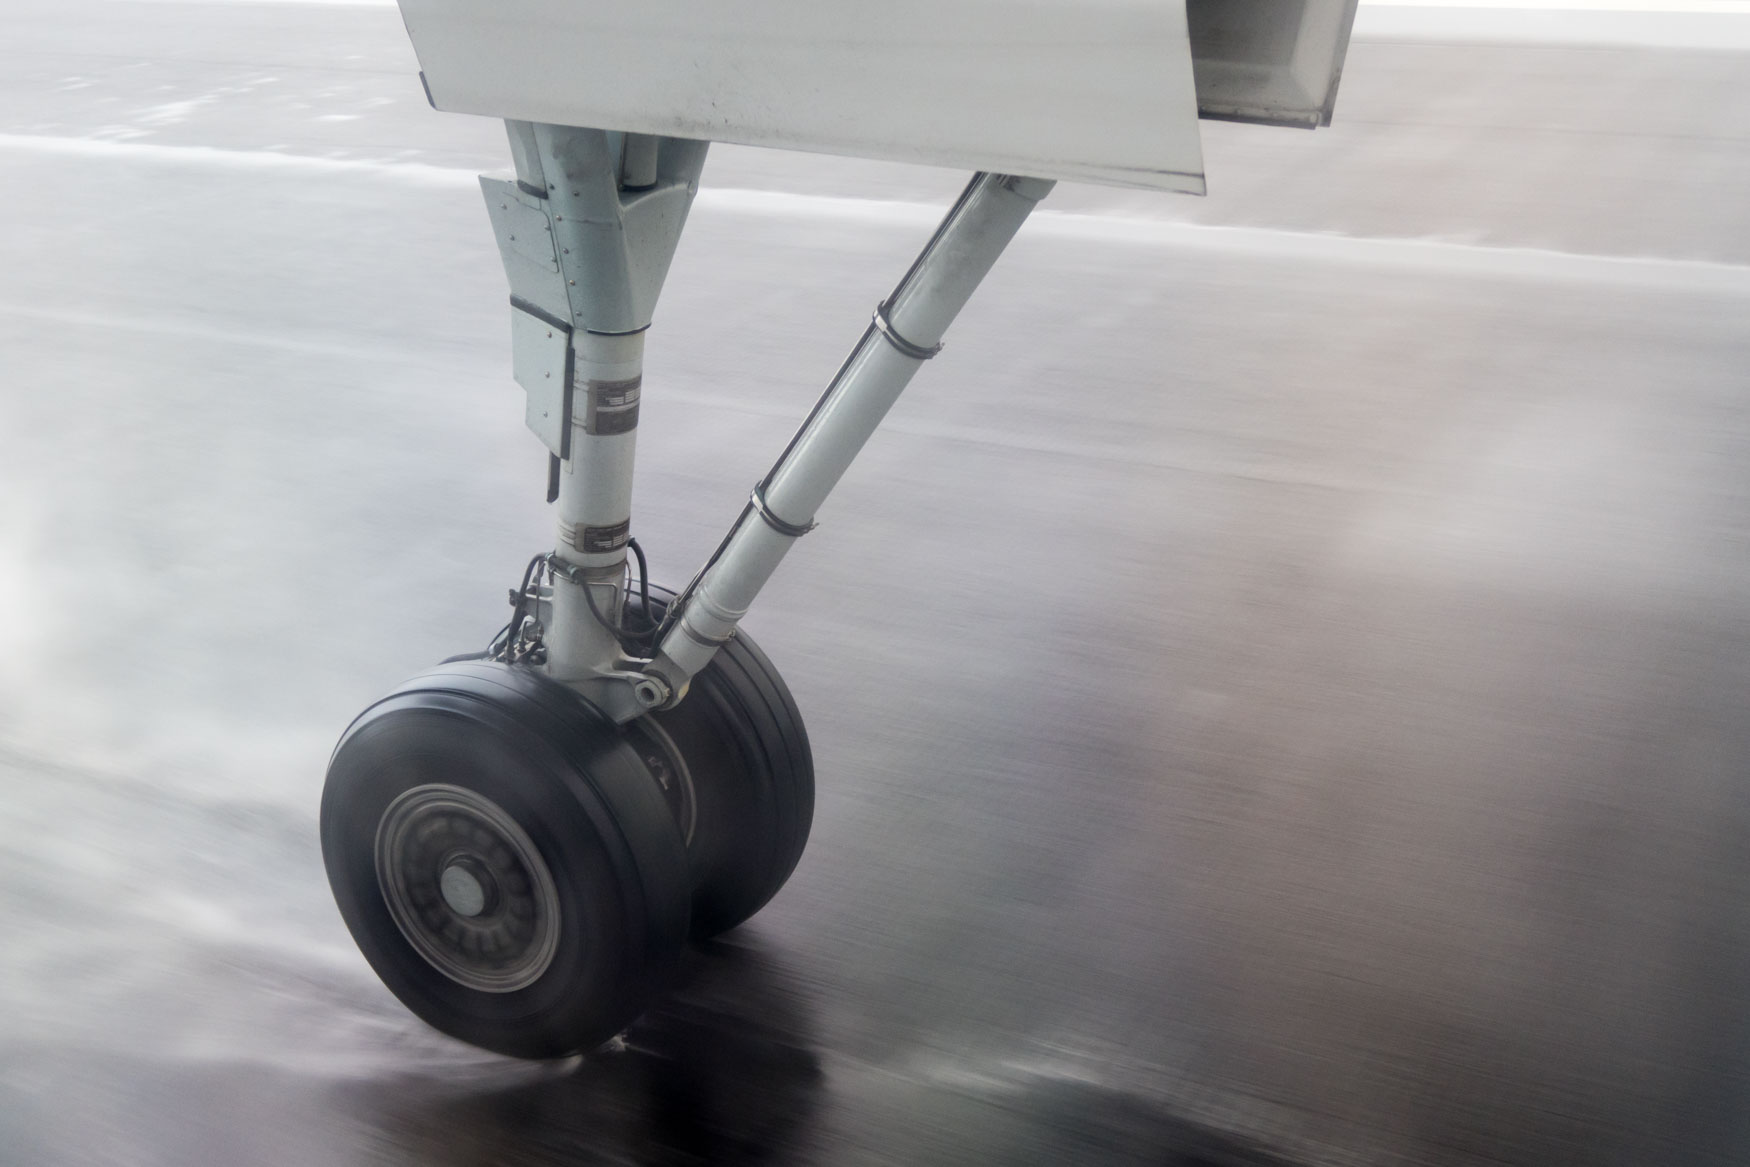 Wet Runway Braking